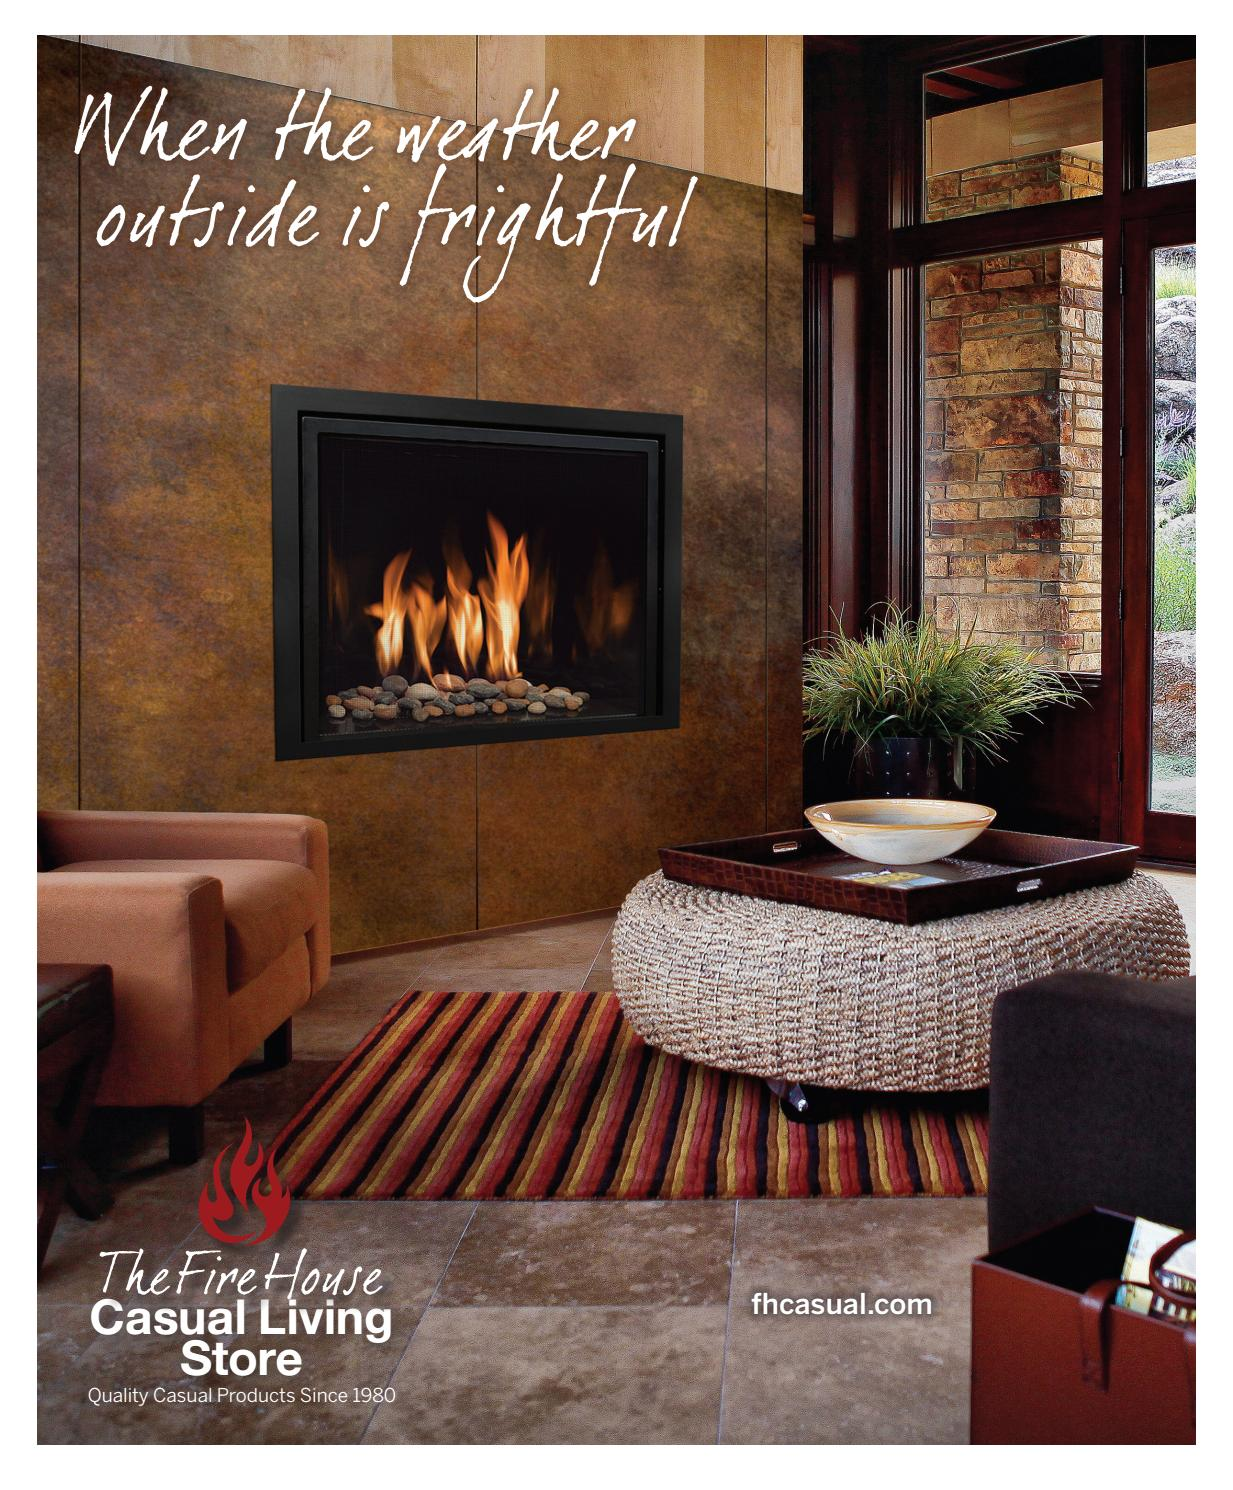 Fire House Casual Living Store Fall Winter Sale - Fire ... on Fireplace Casual Living id=77750